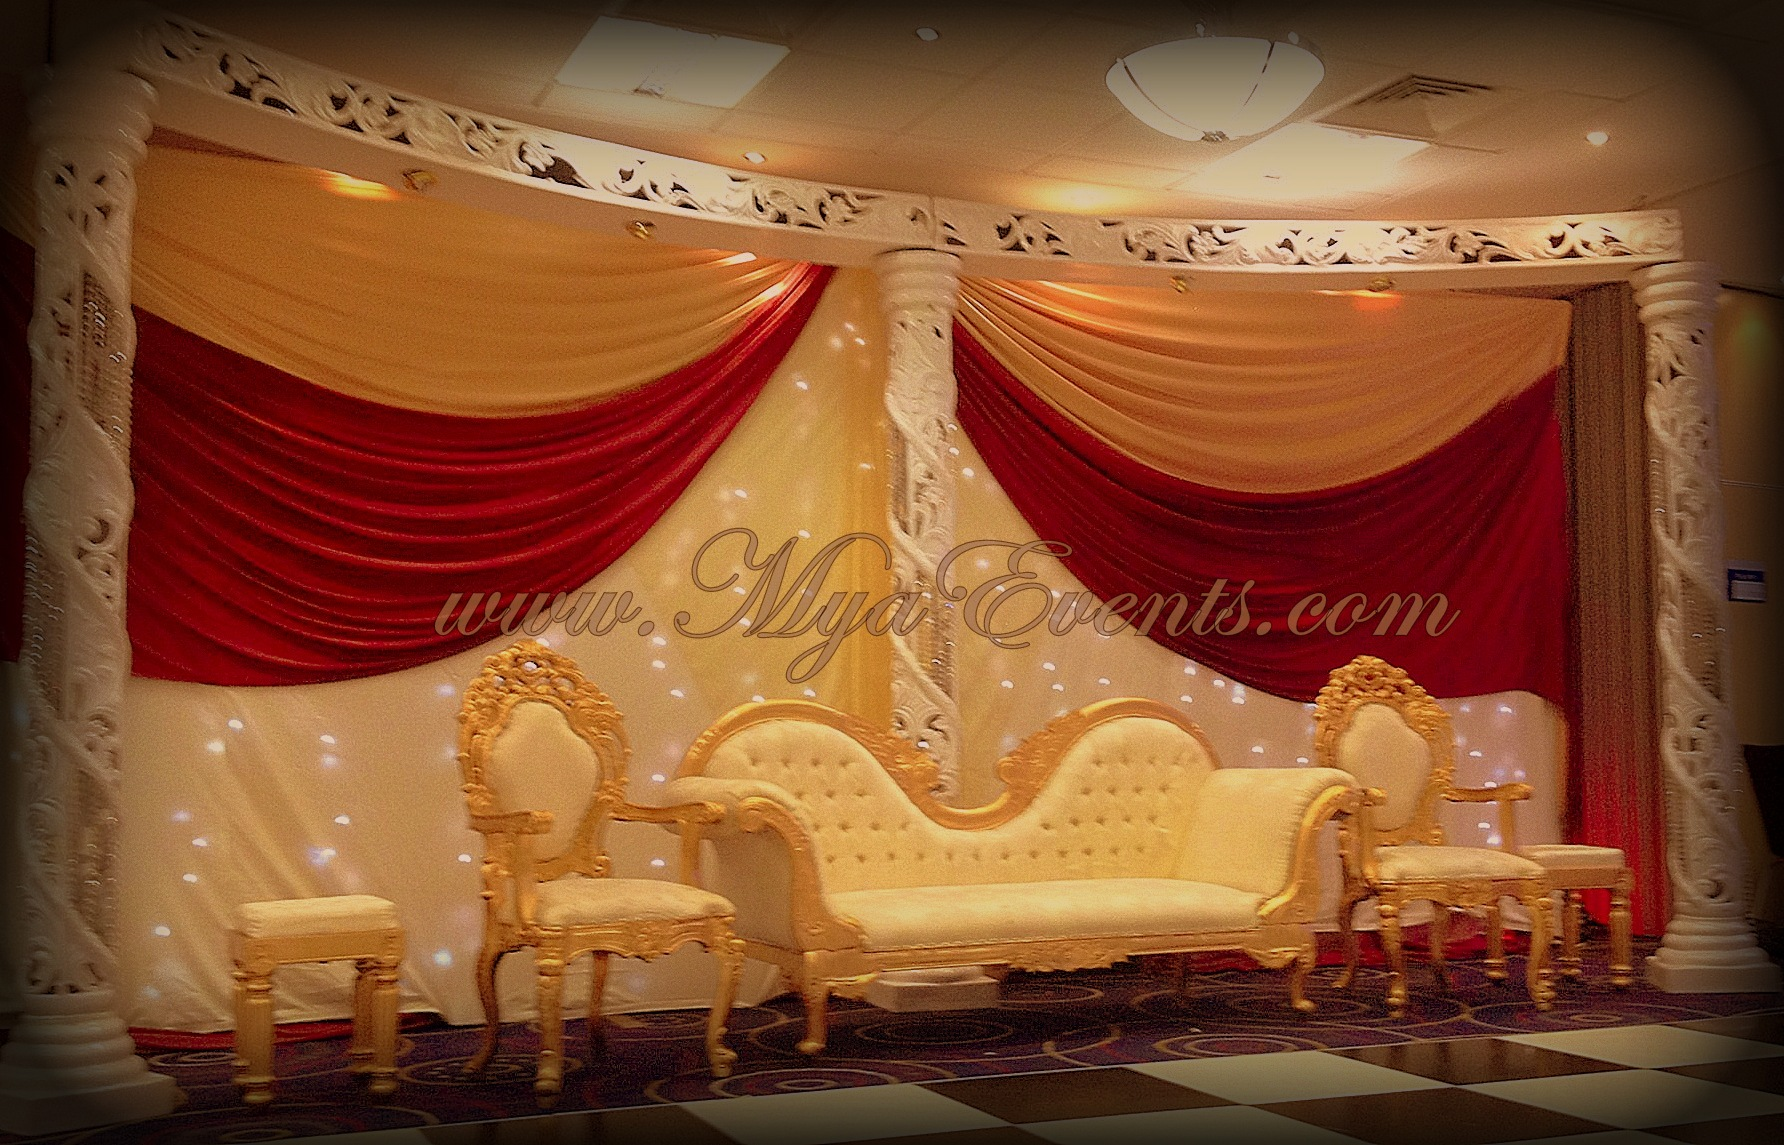 Throne chair hire london 199 wedding throne chair for Asian wedding bed decoration